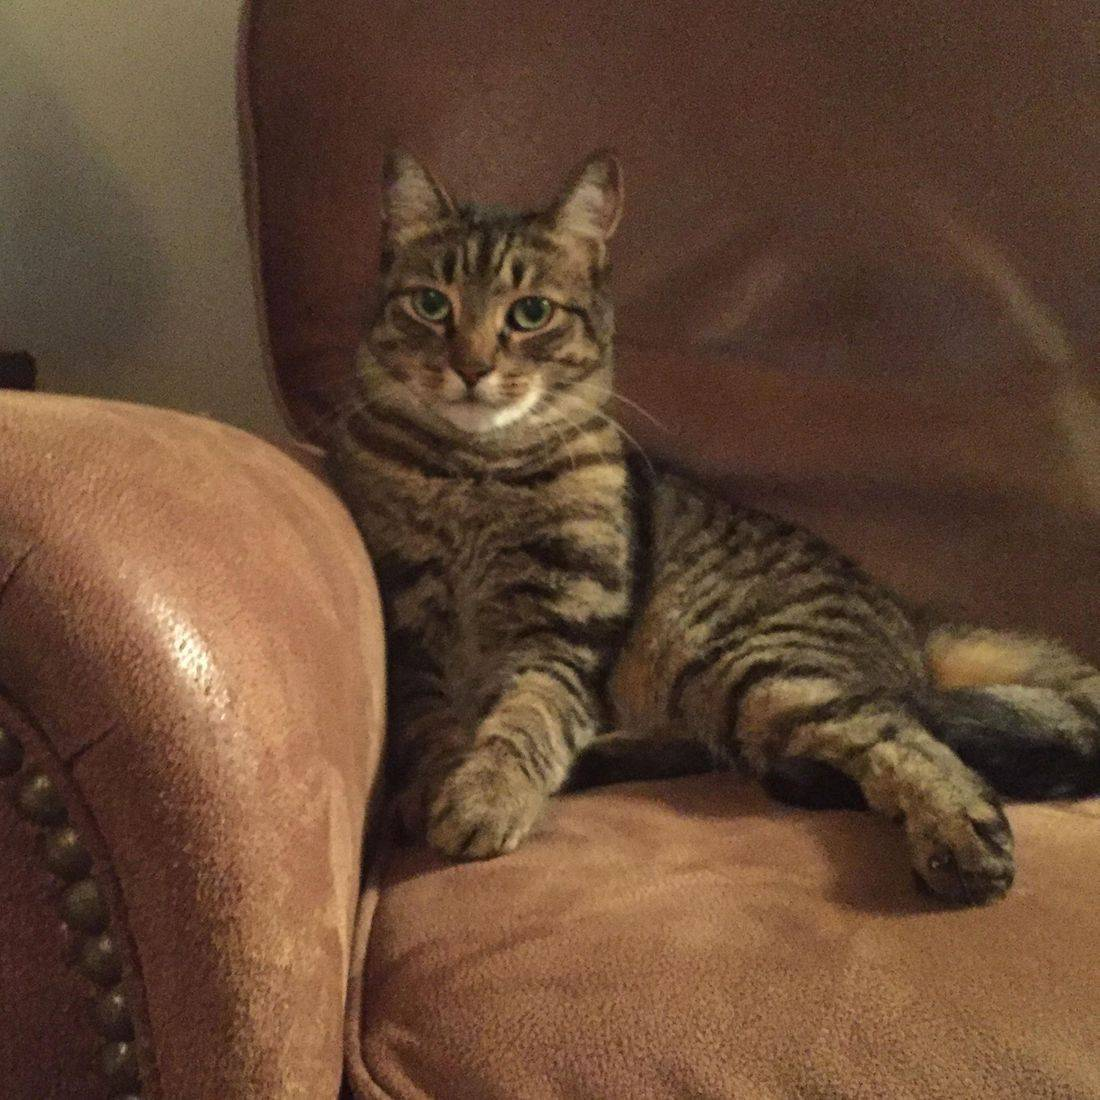 Photo of a handsome cat sitting on a sofa